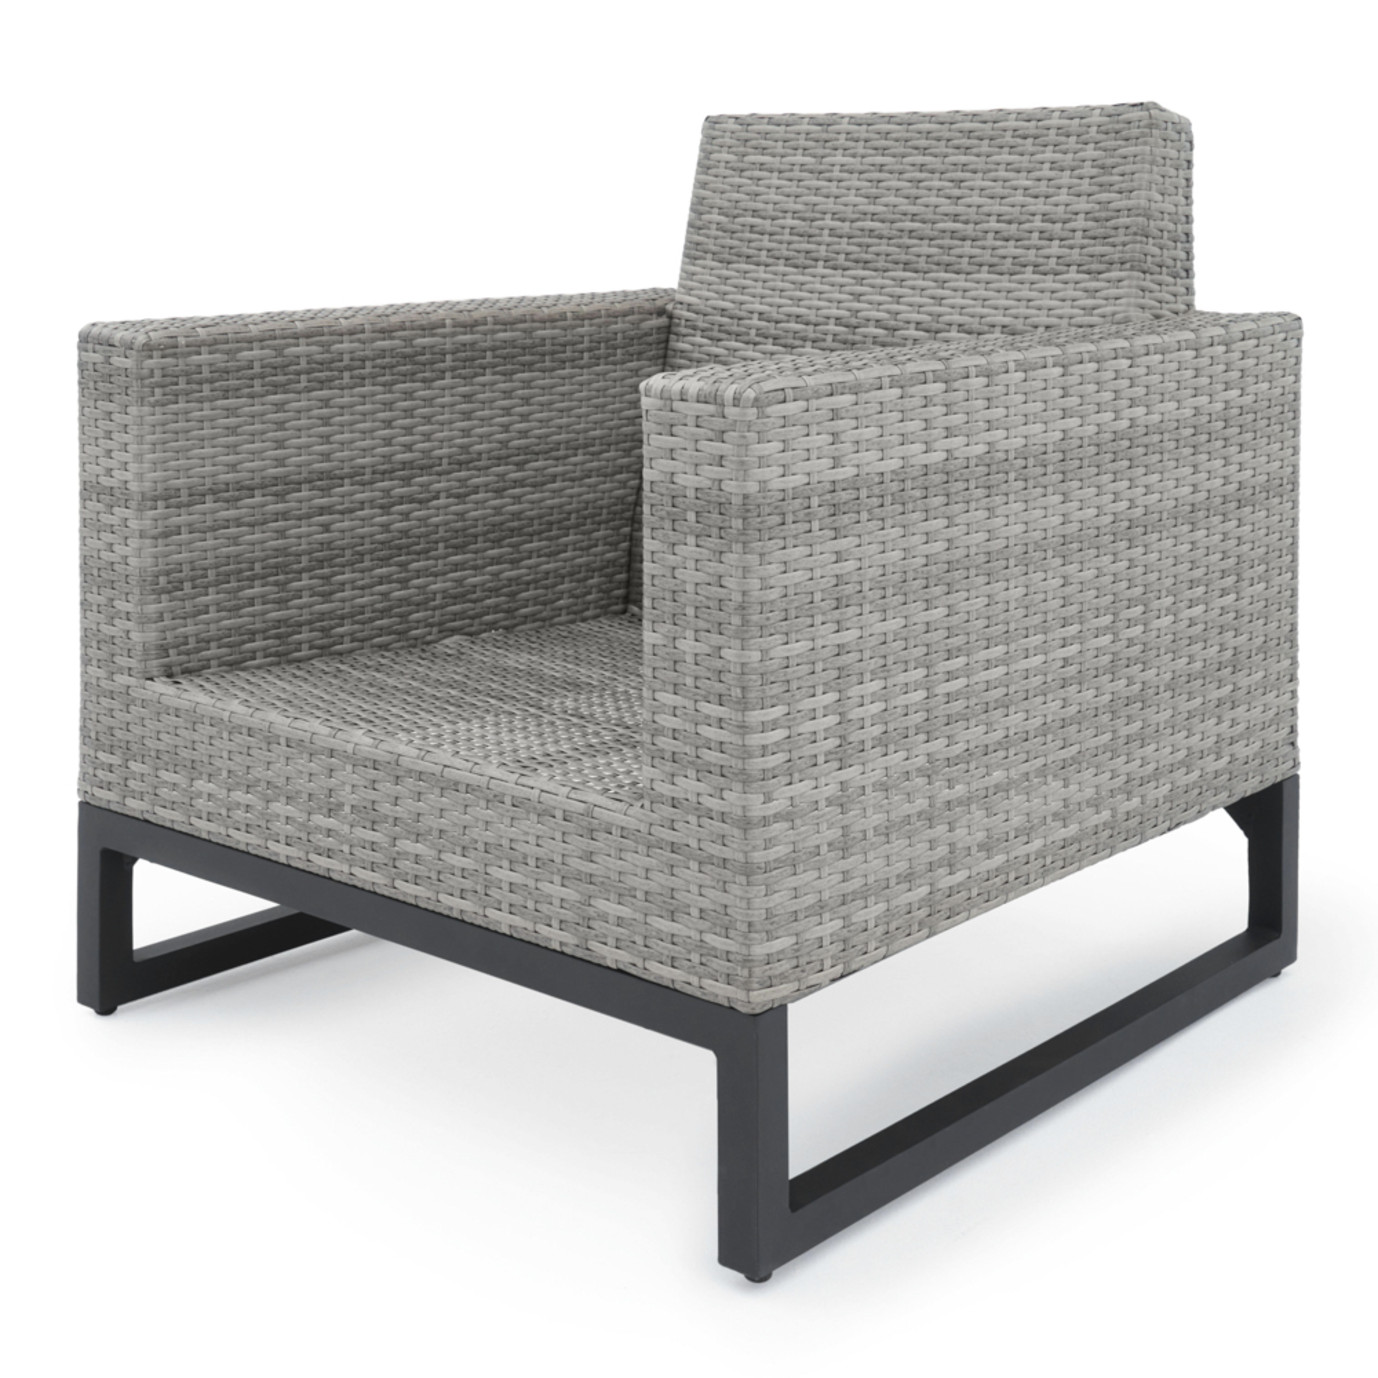 Milo™ Gray 7pc Deep Seating Set -Slate Gray